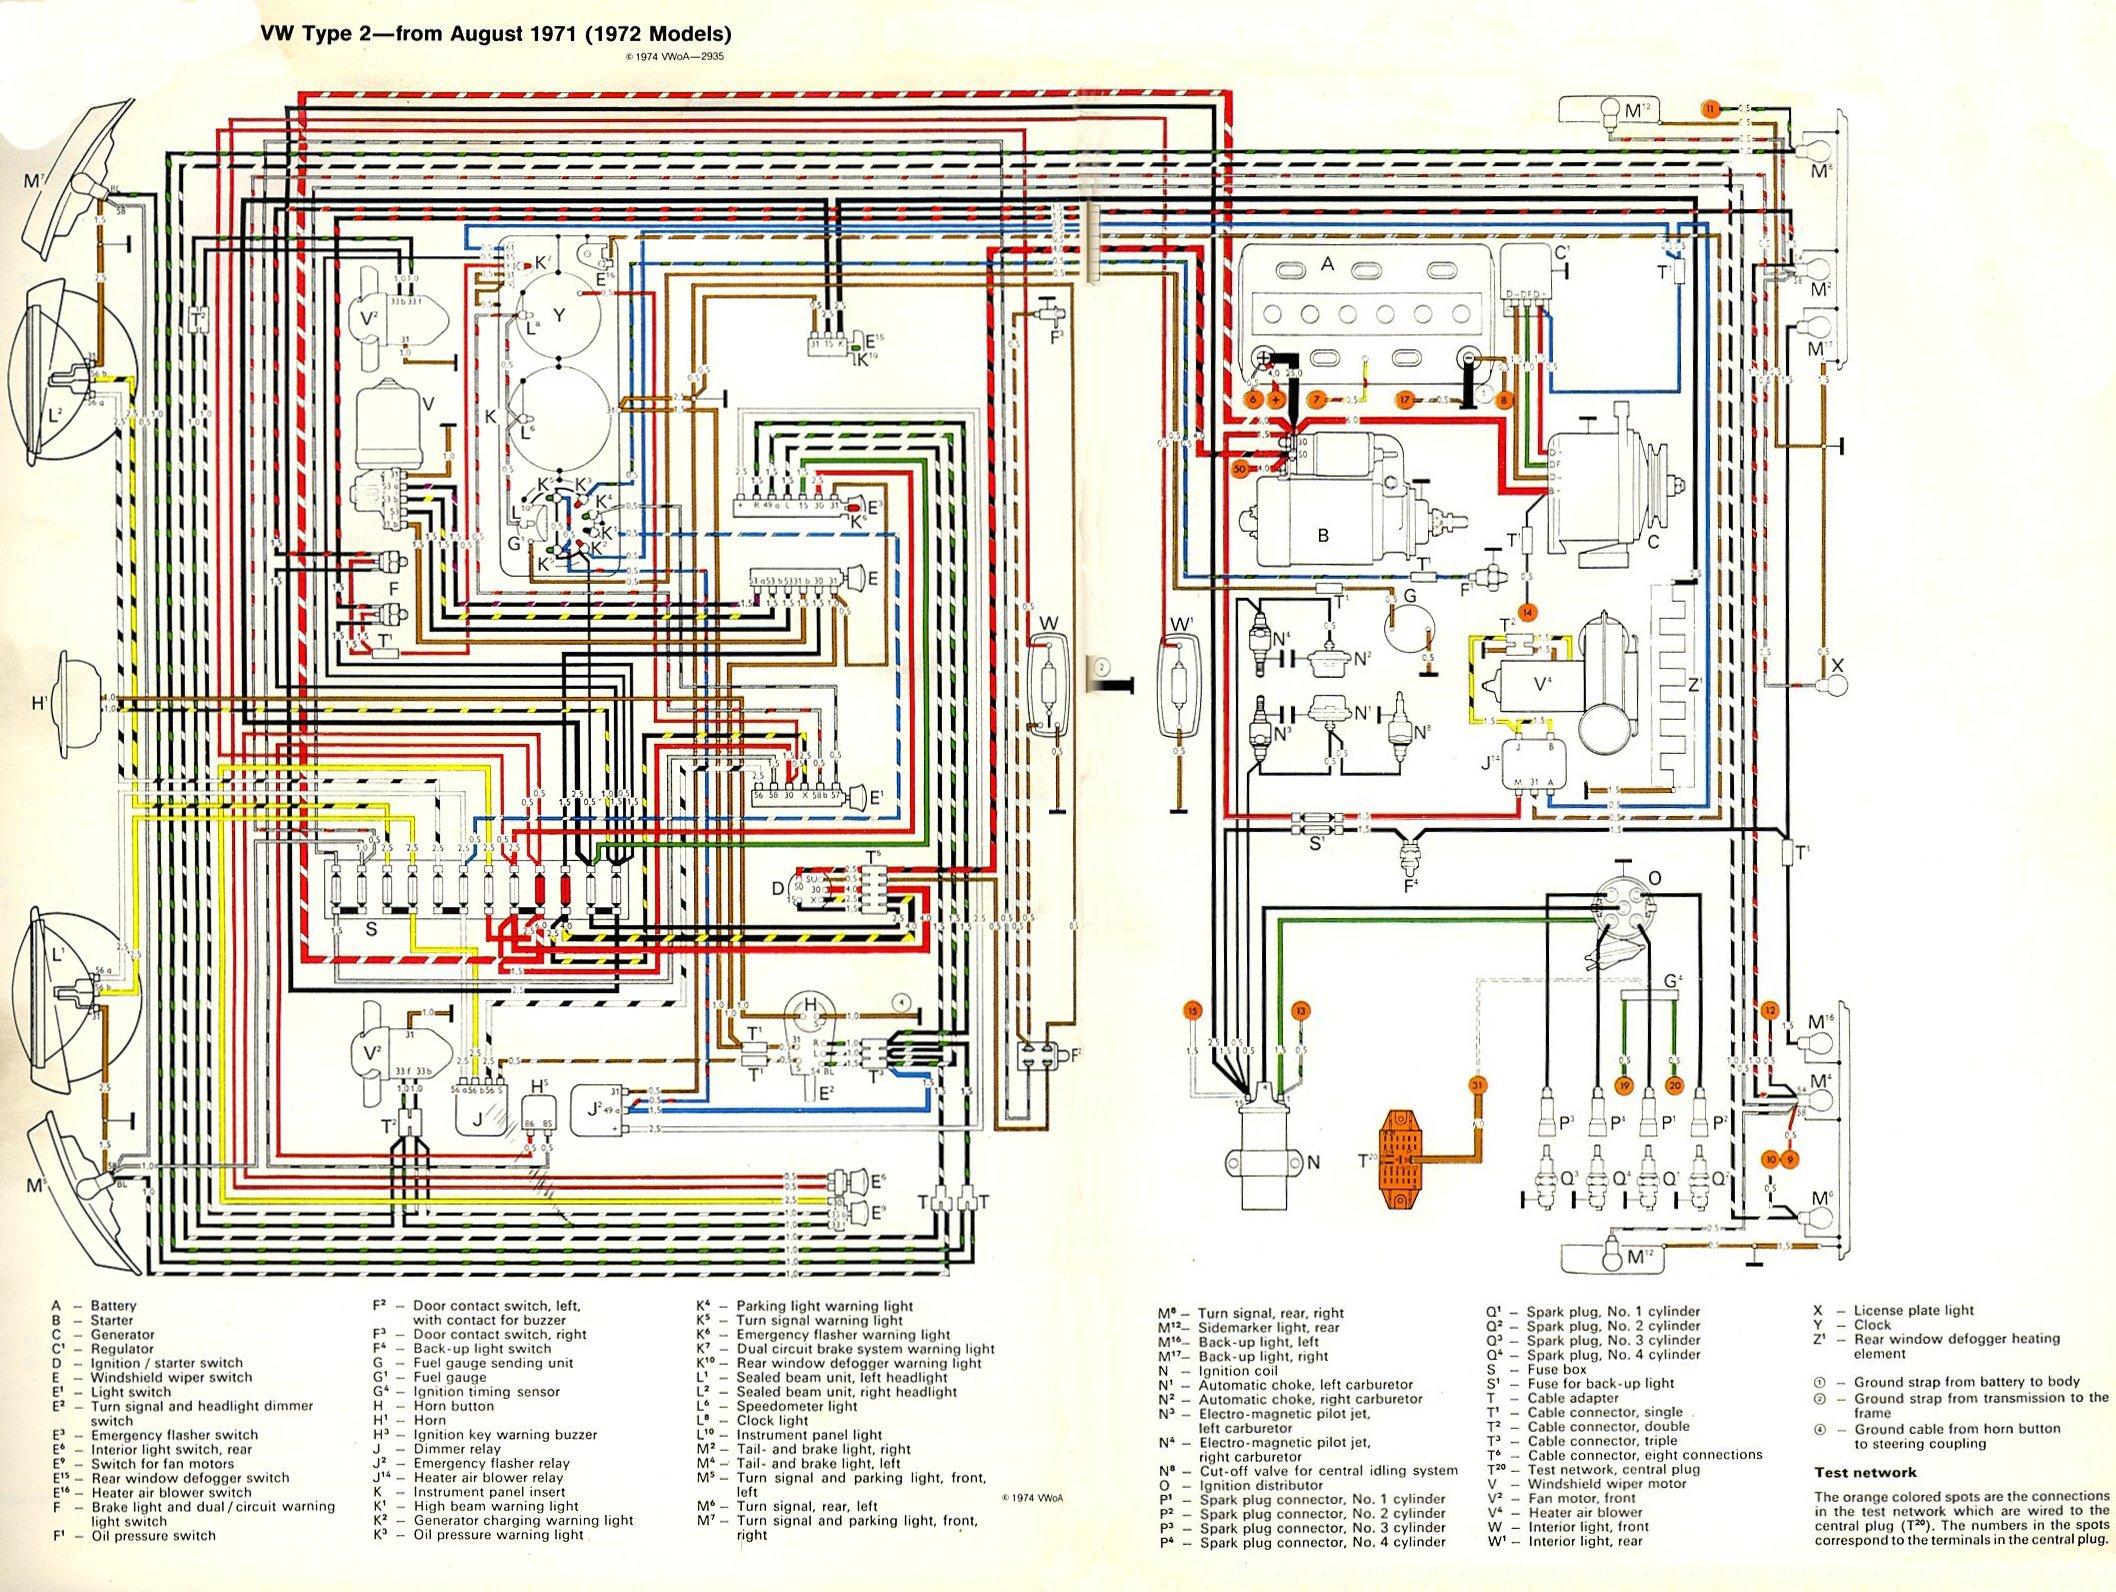 bus_1972_wiring?zoom=2.625&resize=665%2C500&ssl=1 free auto wiring diagram 1967 1972 chevrolet truck v8 engine 72 vw bus wiring diagram at alyssarenee.co